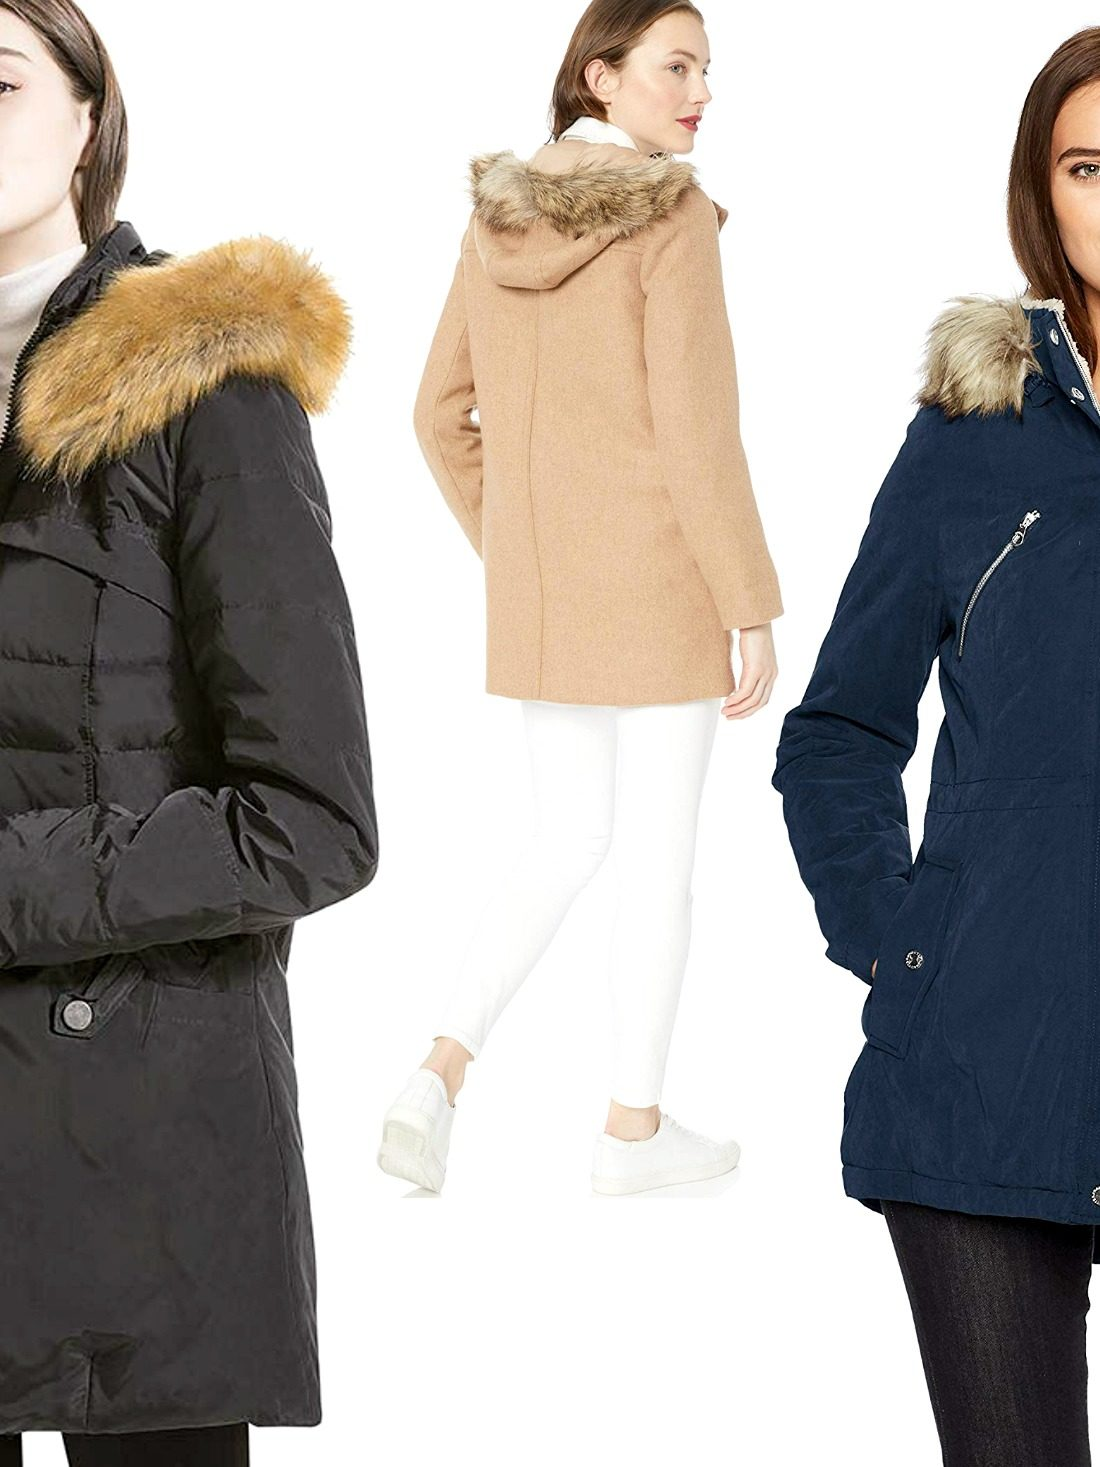 The warmth provided by these best womens parka coats with fur hood is only one side of the story. The real deal starts with their looks. You're in for a surprise!